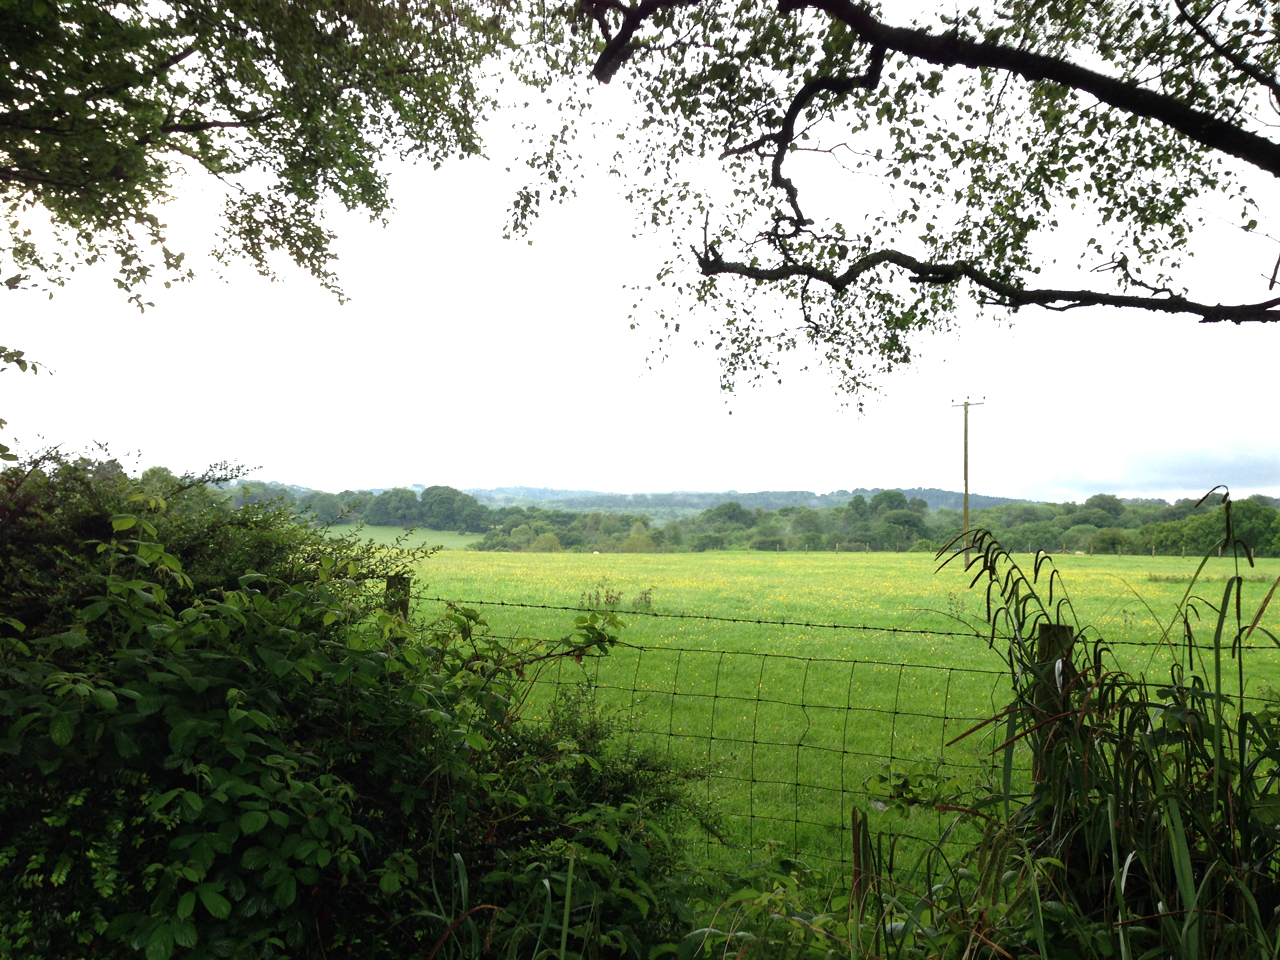 the whole weekend rained but the countryside was lush and calming, I loved it here!